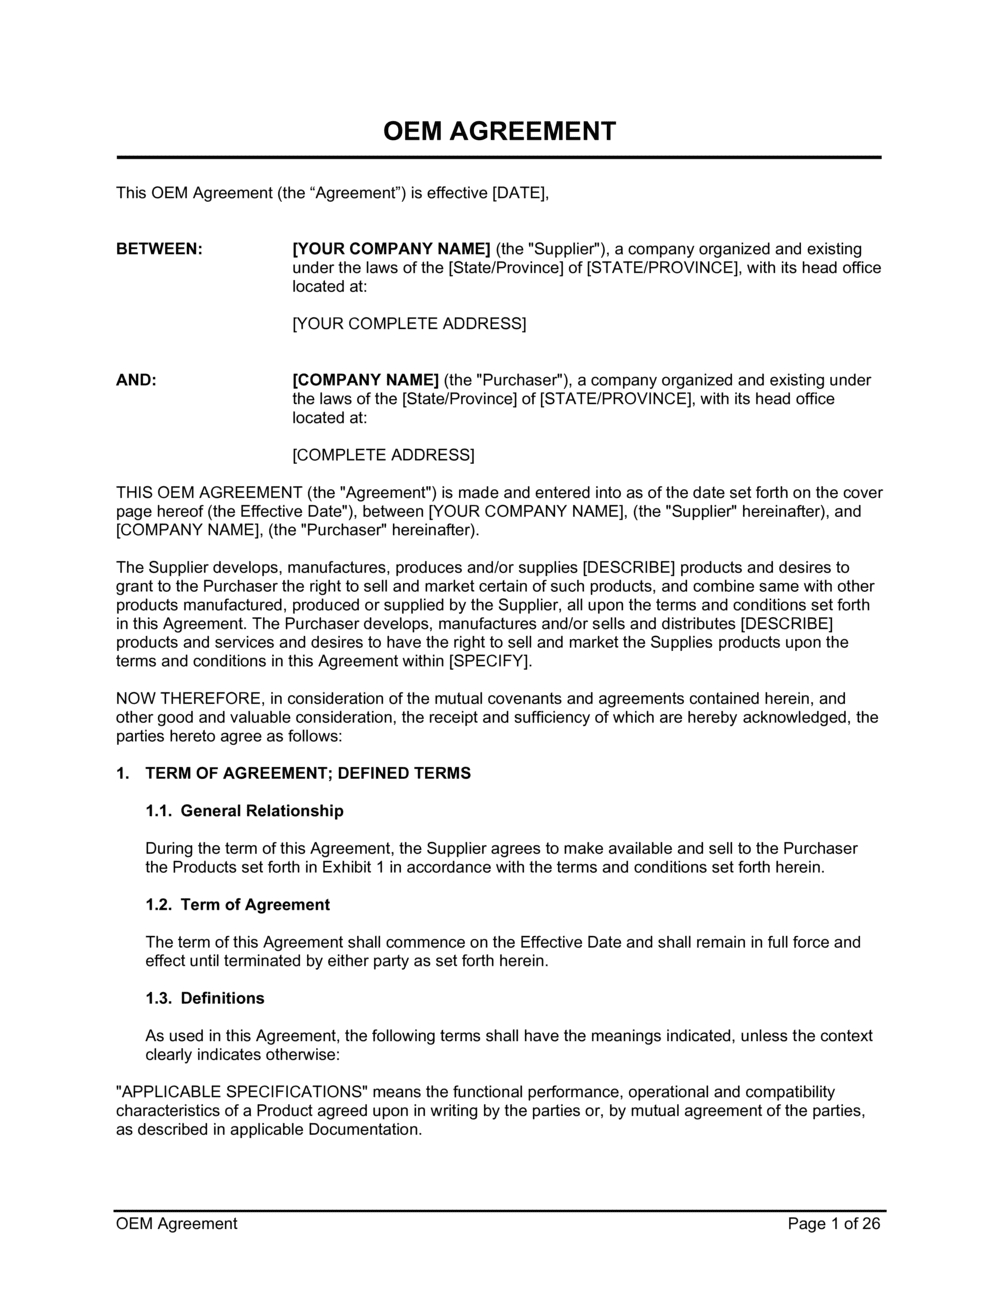 Business-in-a-Box's Oem Agreement Template